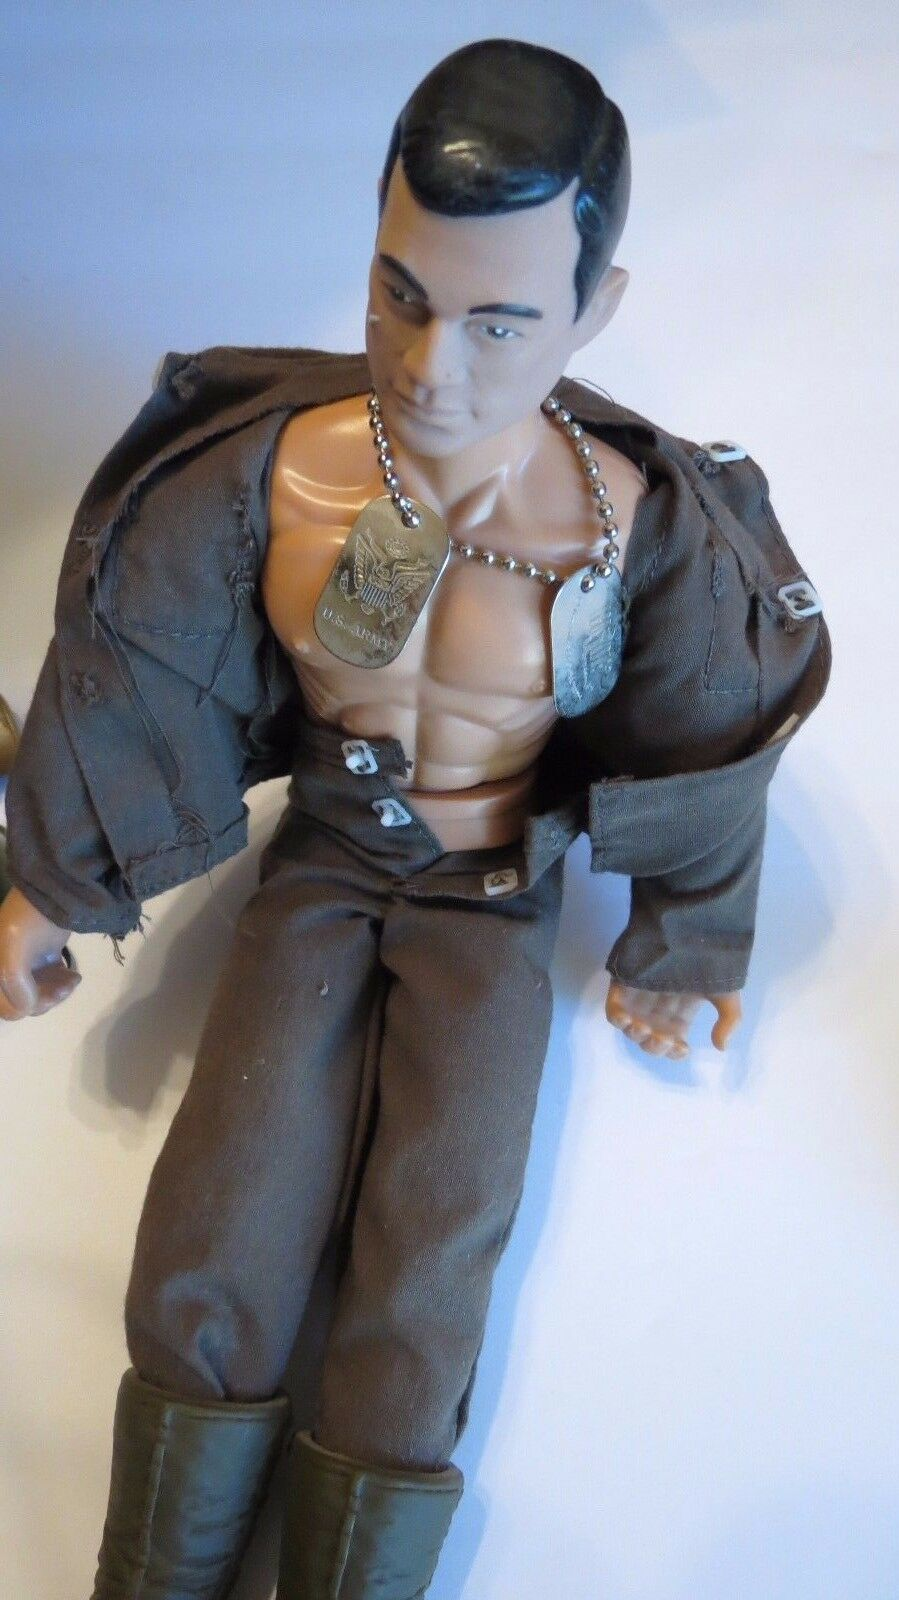 1994 HASBRO GI JOE  ACTION ACTION ACTION FIGURE DOLL With CLOTHES, STAND & ACCESSORIES  11